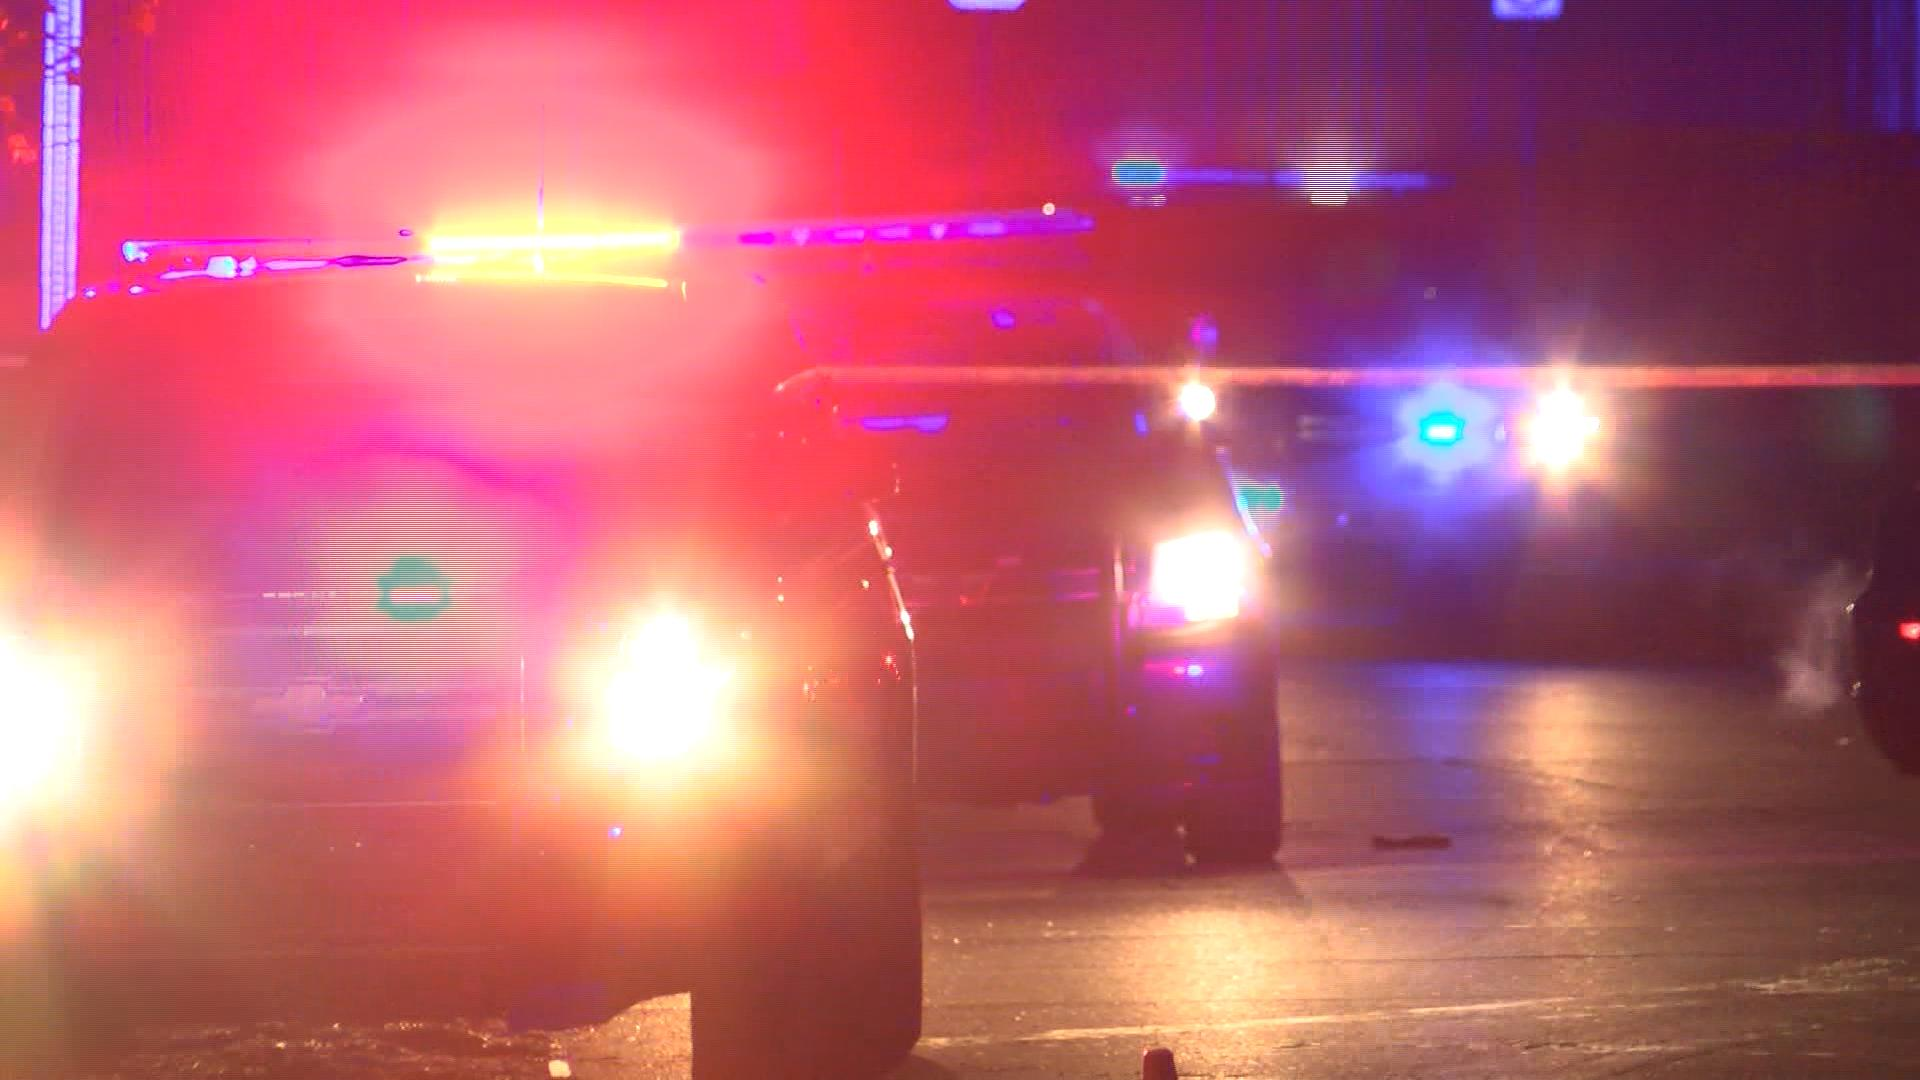 A 15-year-old girl is in critical condition after being shot in the head (Photo credit: Ian Wood, NBC25/FOX66 News)